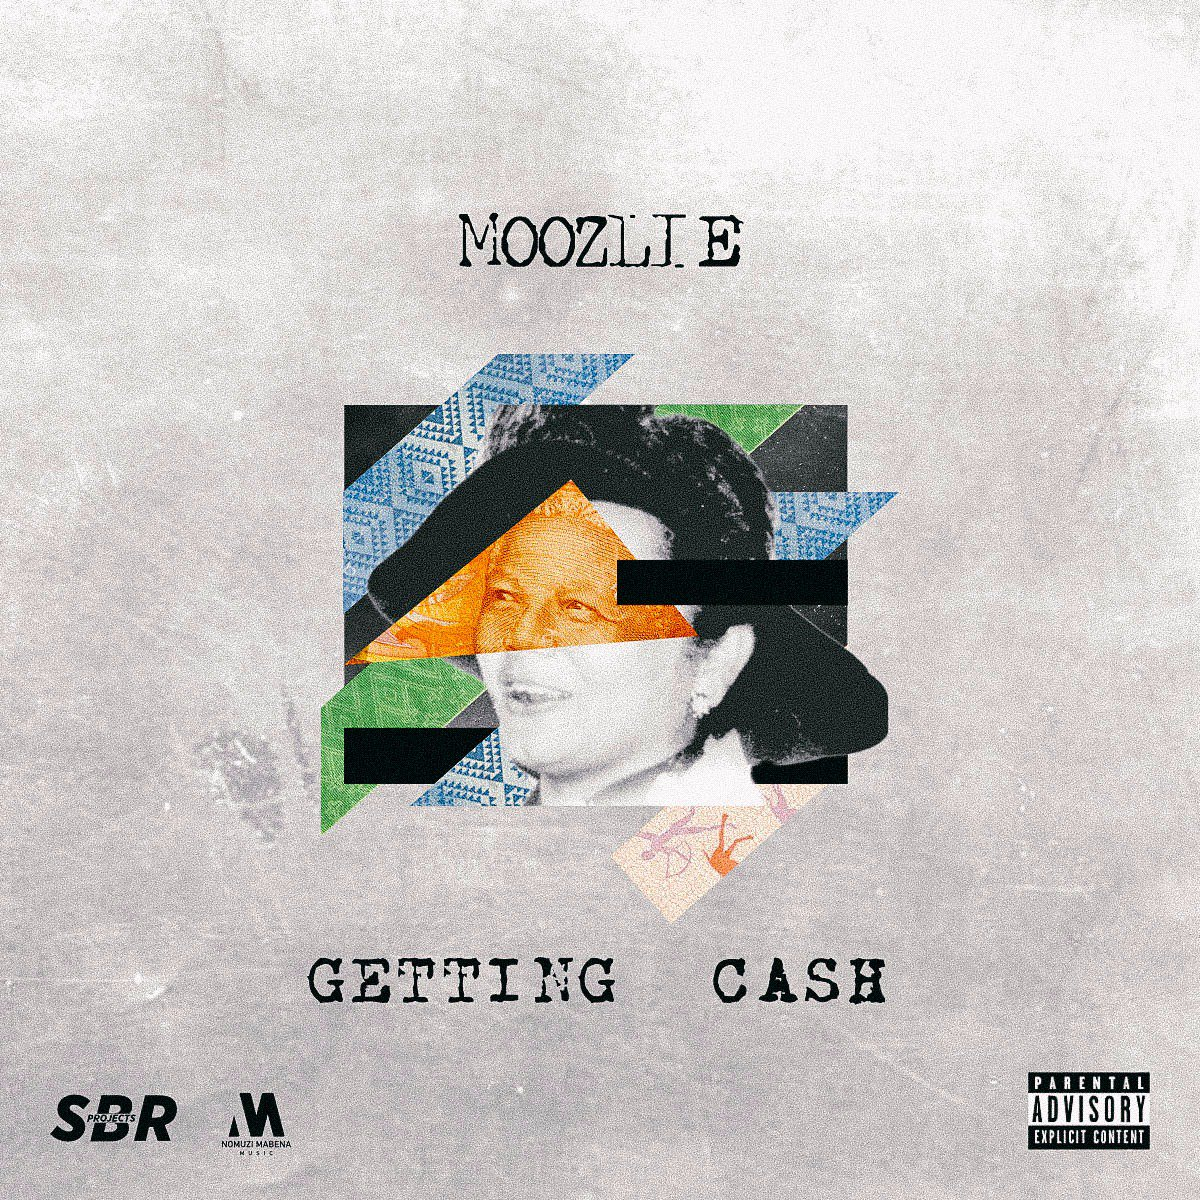 New Moozlie 'Getting Cash' Single Dropping Friday DLr5 O7WkAAoolW